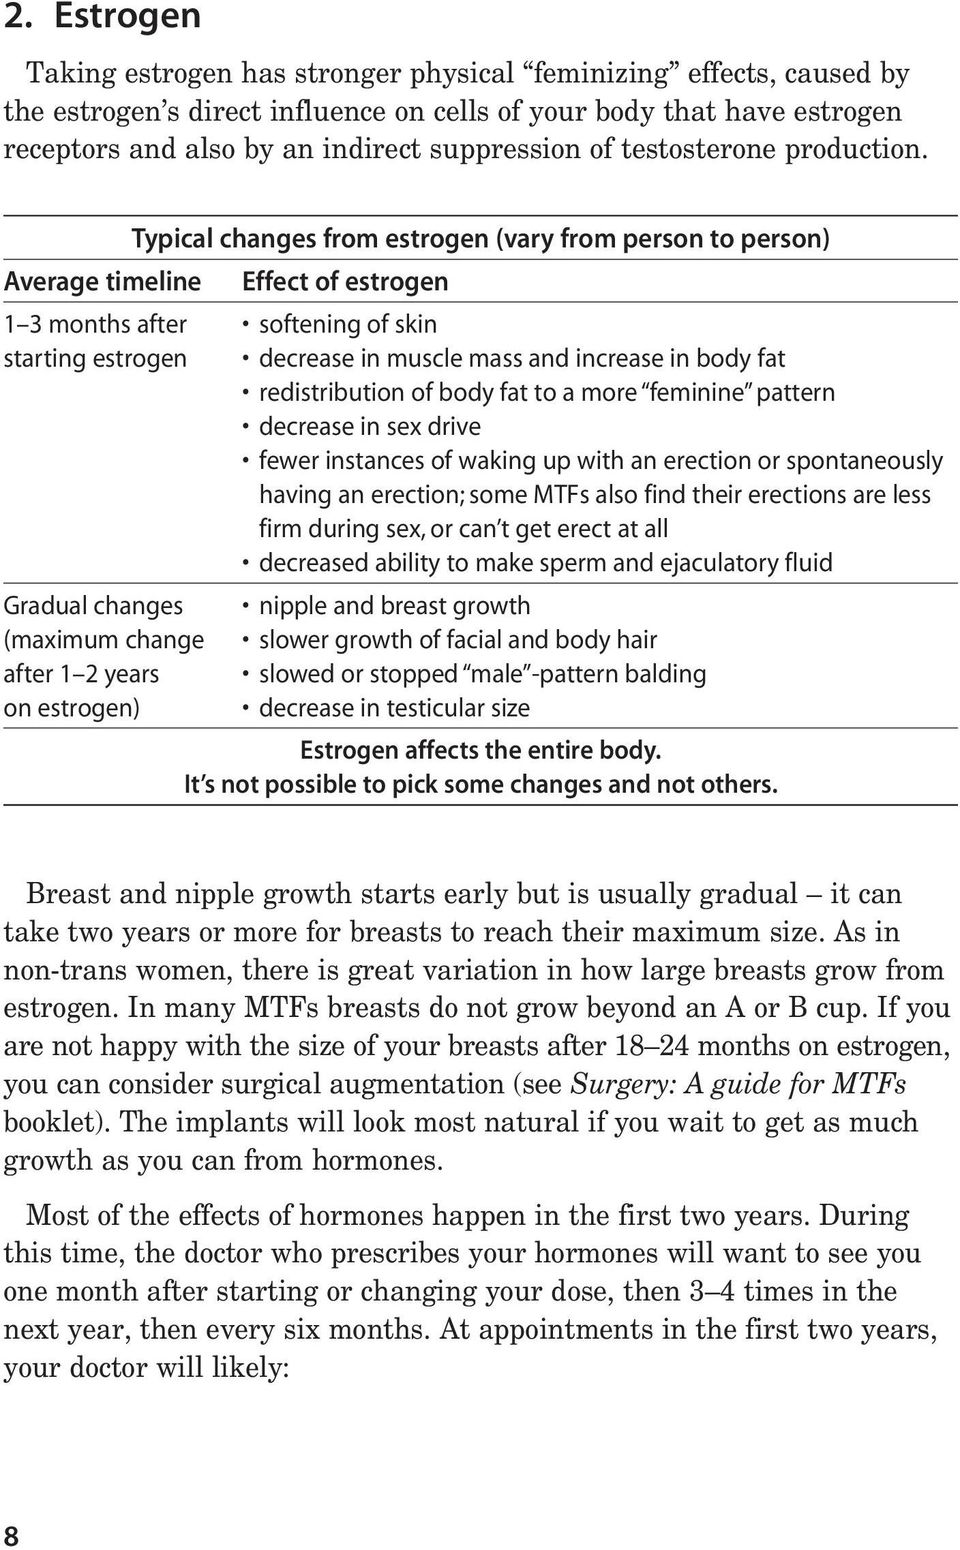 Typical changes from estrogen (vary from person to person) Average timeline Effect of estrogen 1 3 months after softening of skin starting estrogen decrease in muscle mass and increase in body fat